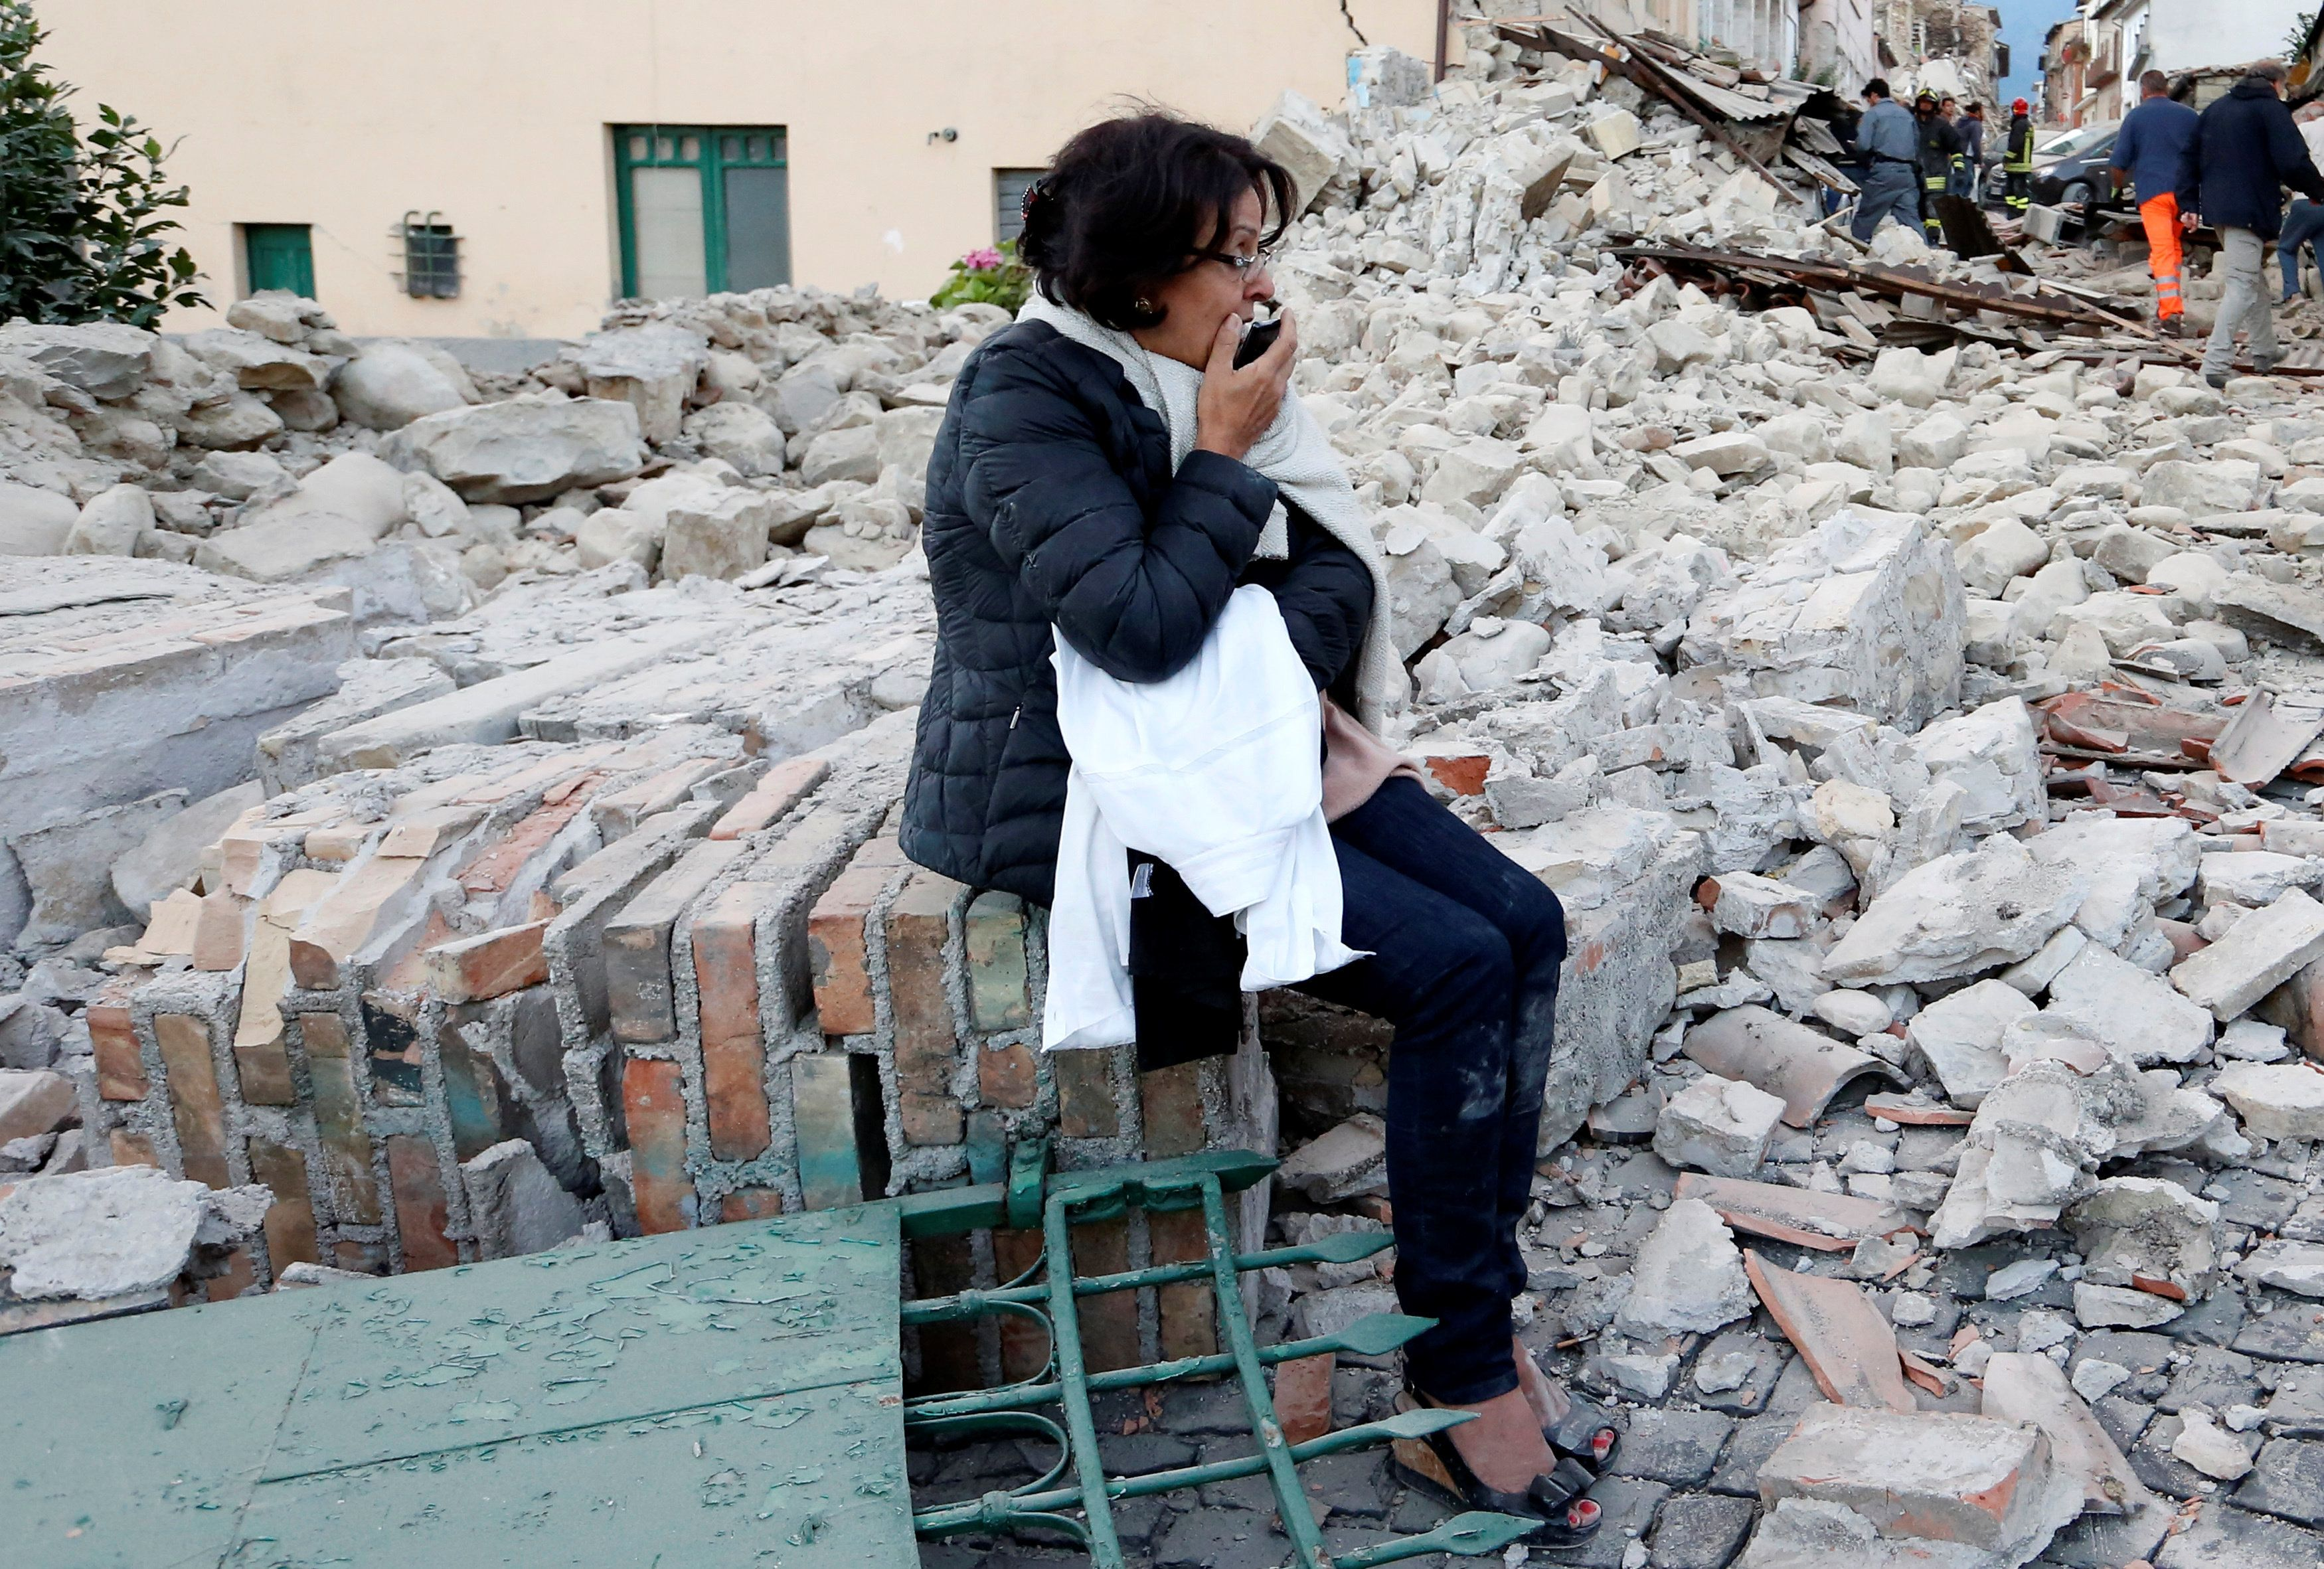 A woman sits along the road following a quake in Amatrice, central Italy, August 24, 2016. REUTERS/Remo Casilli